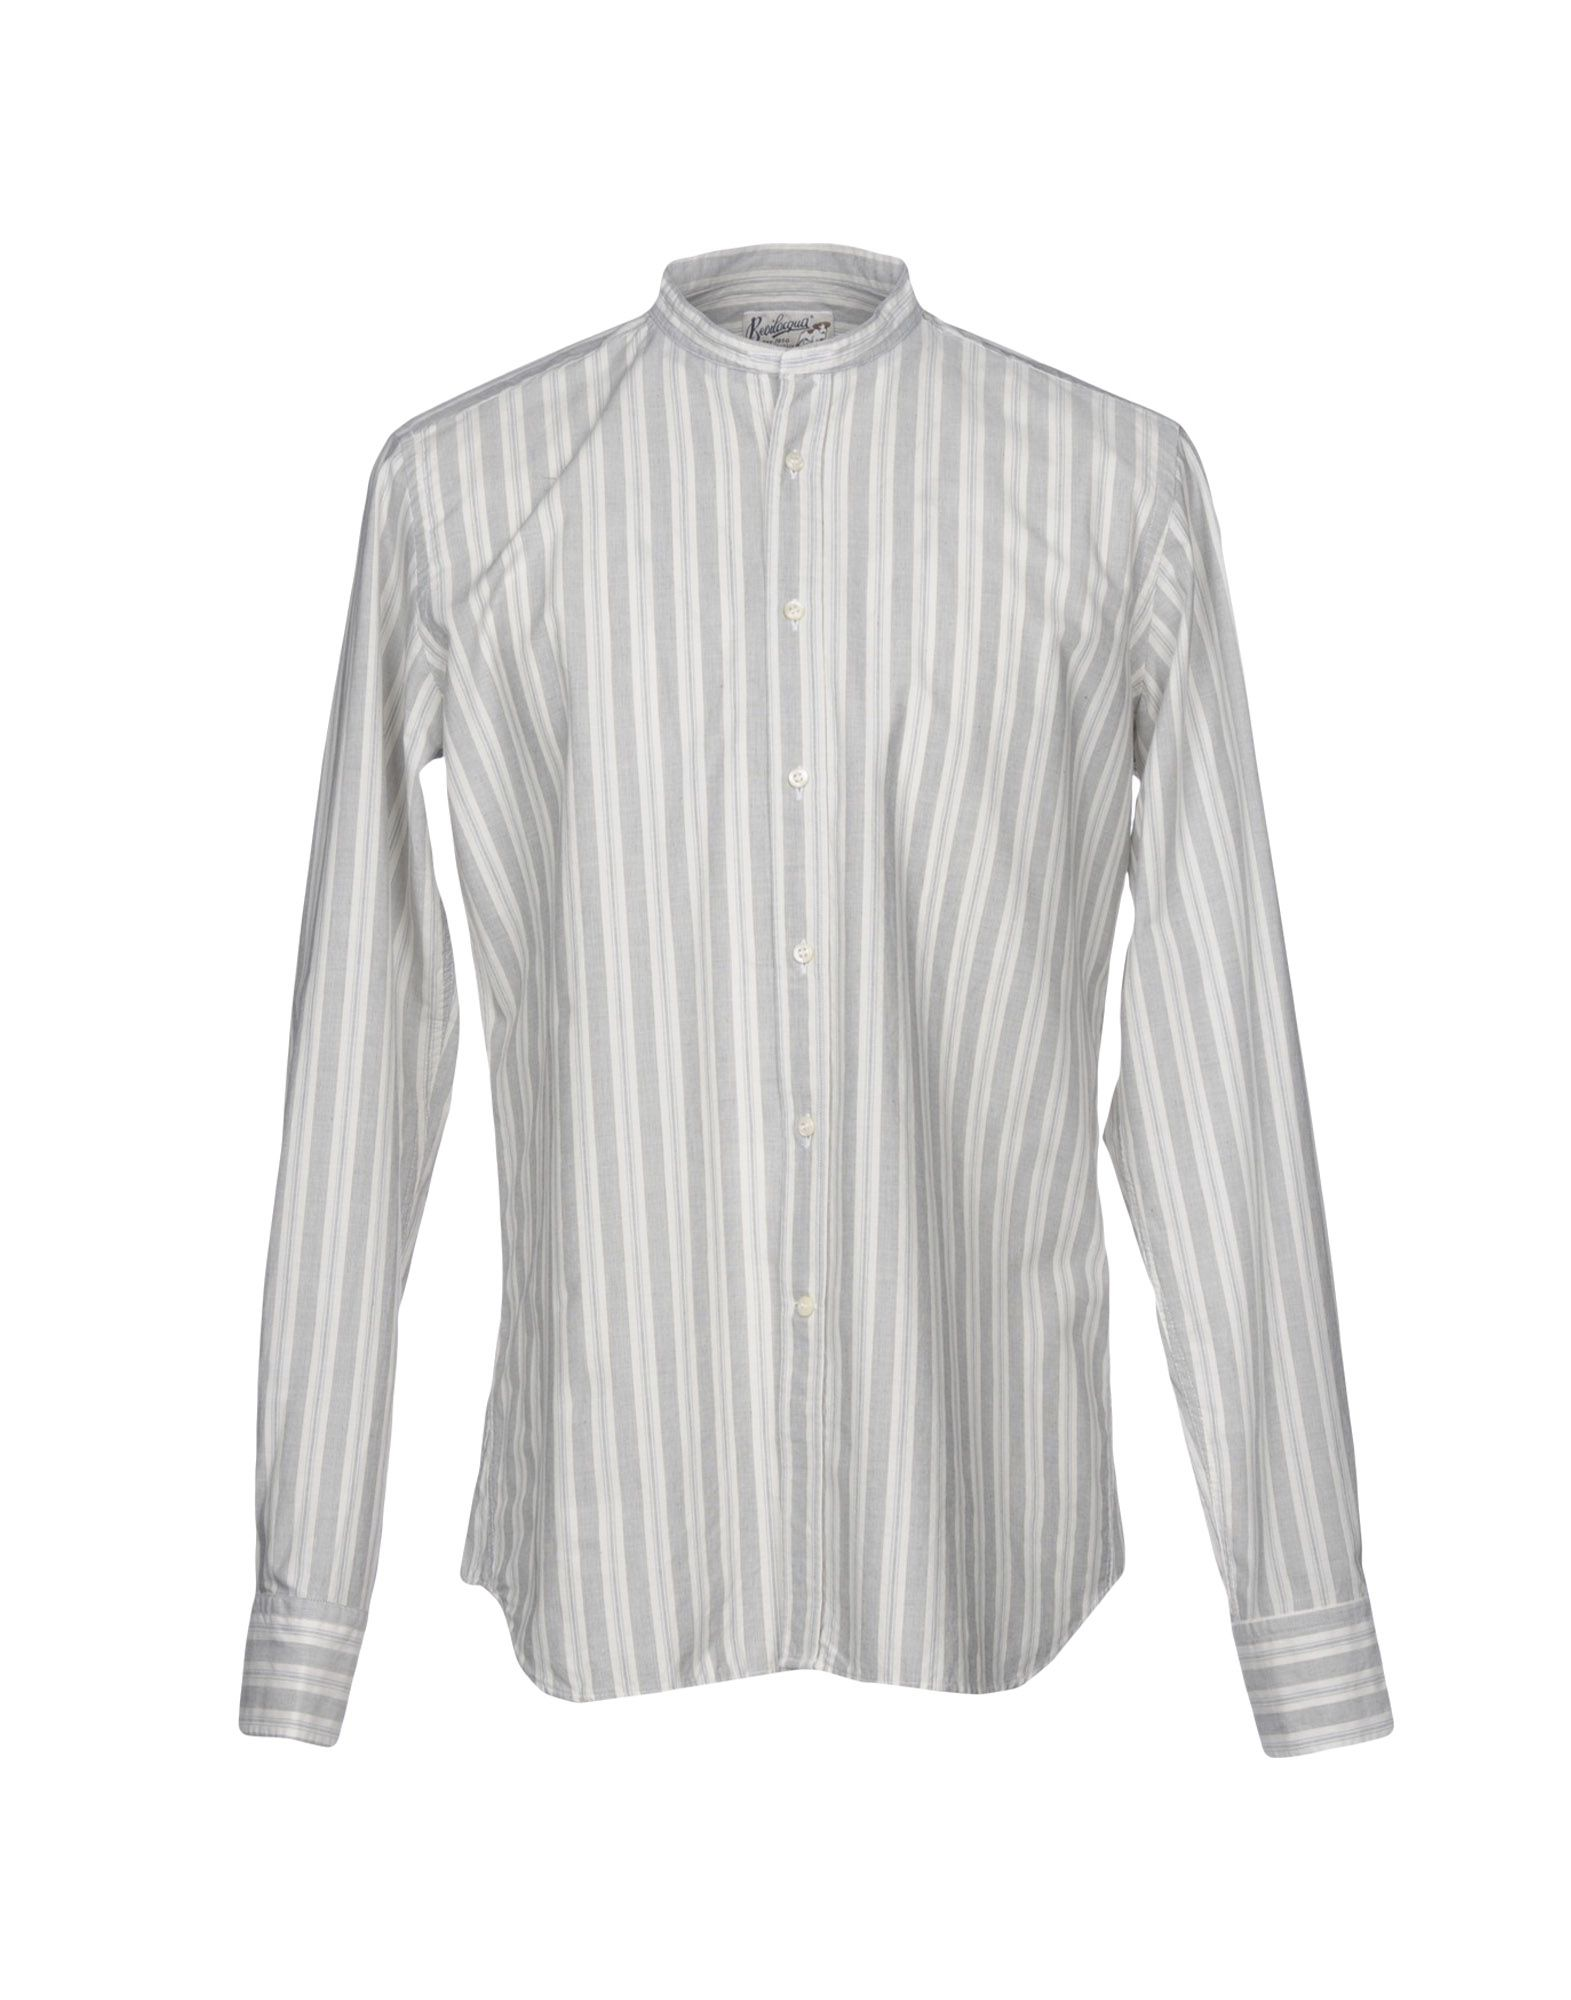 BEVILACQUA Striped Shirt in Light Grey